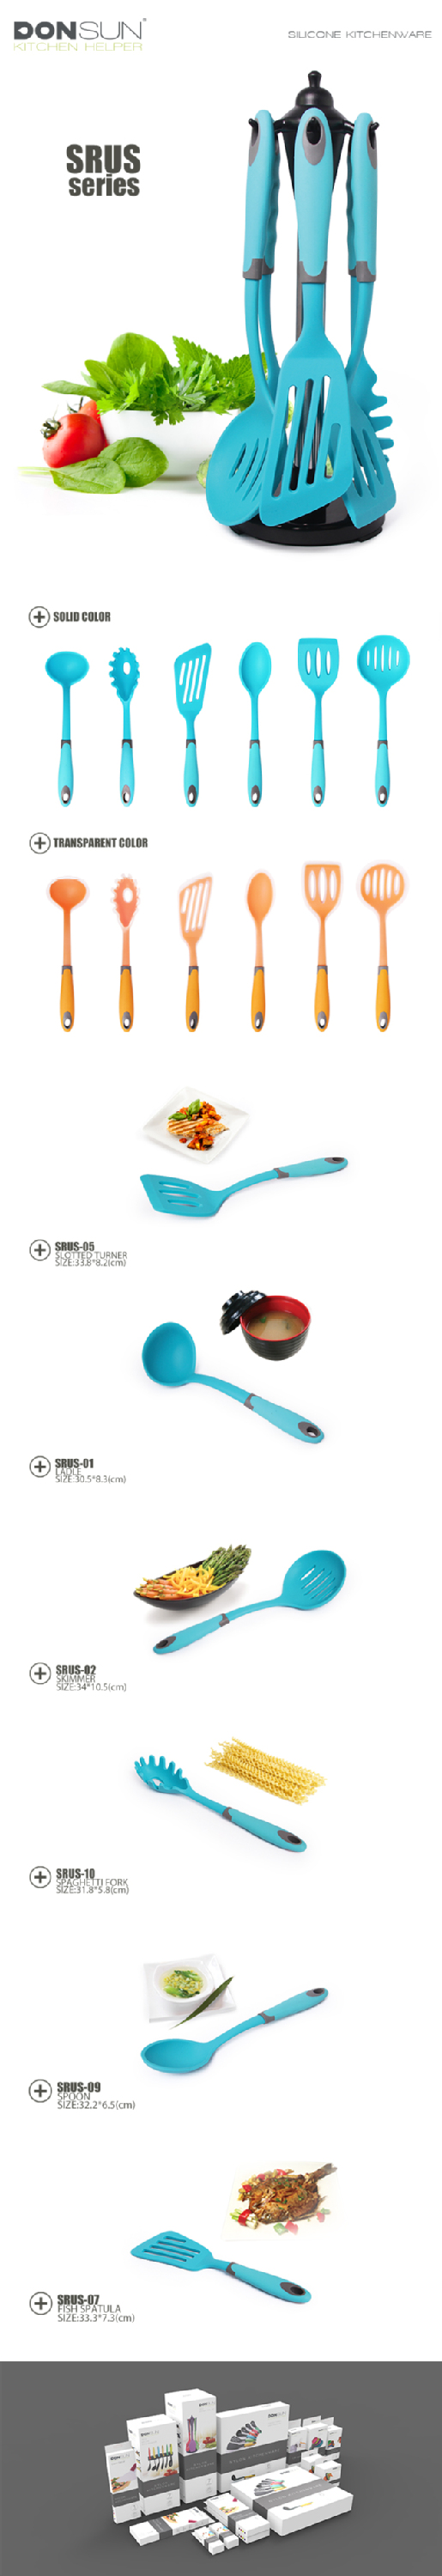 Heat Resistant Custom Best Silicone kitchen tools (SRUS) silicone kichen tool